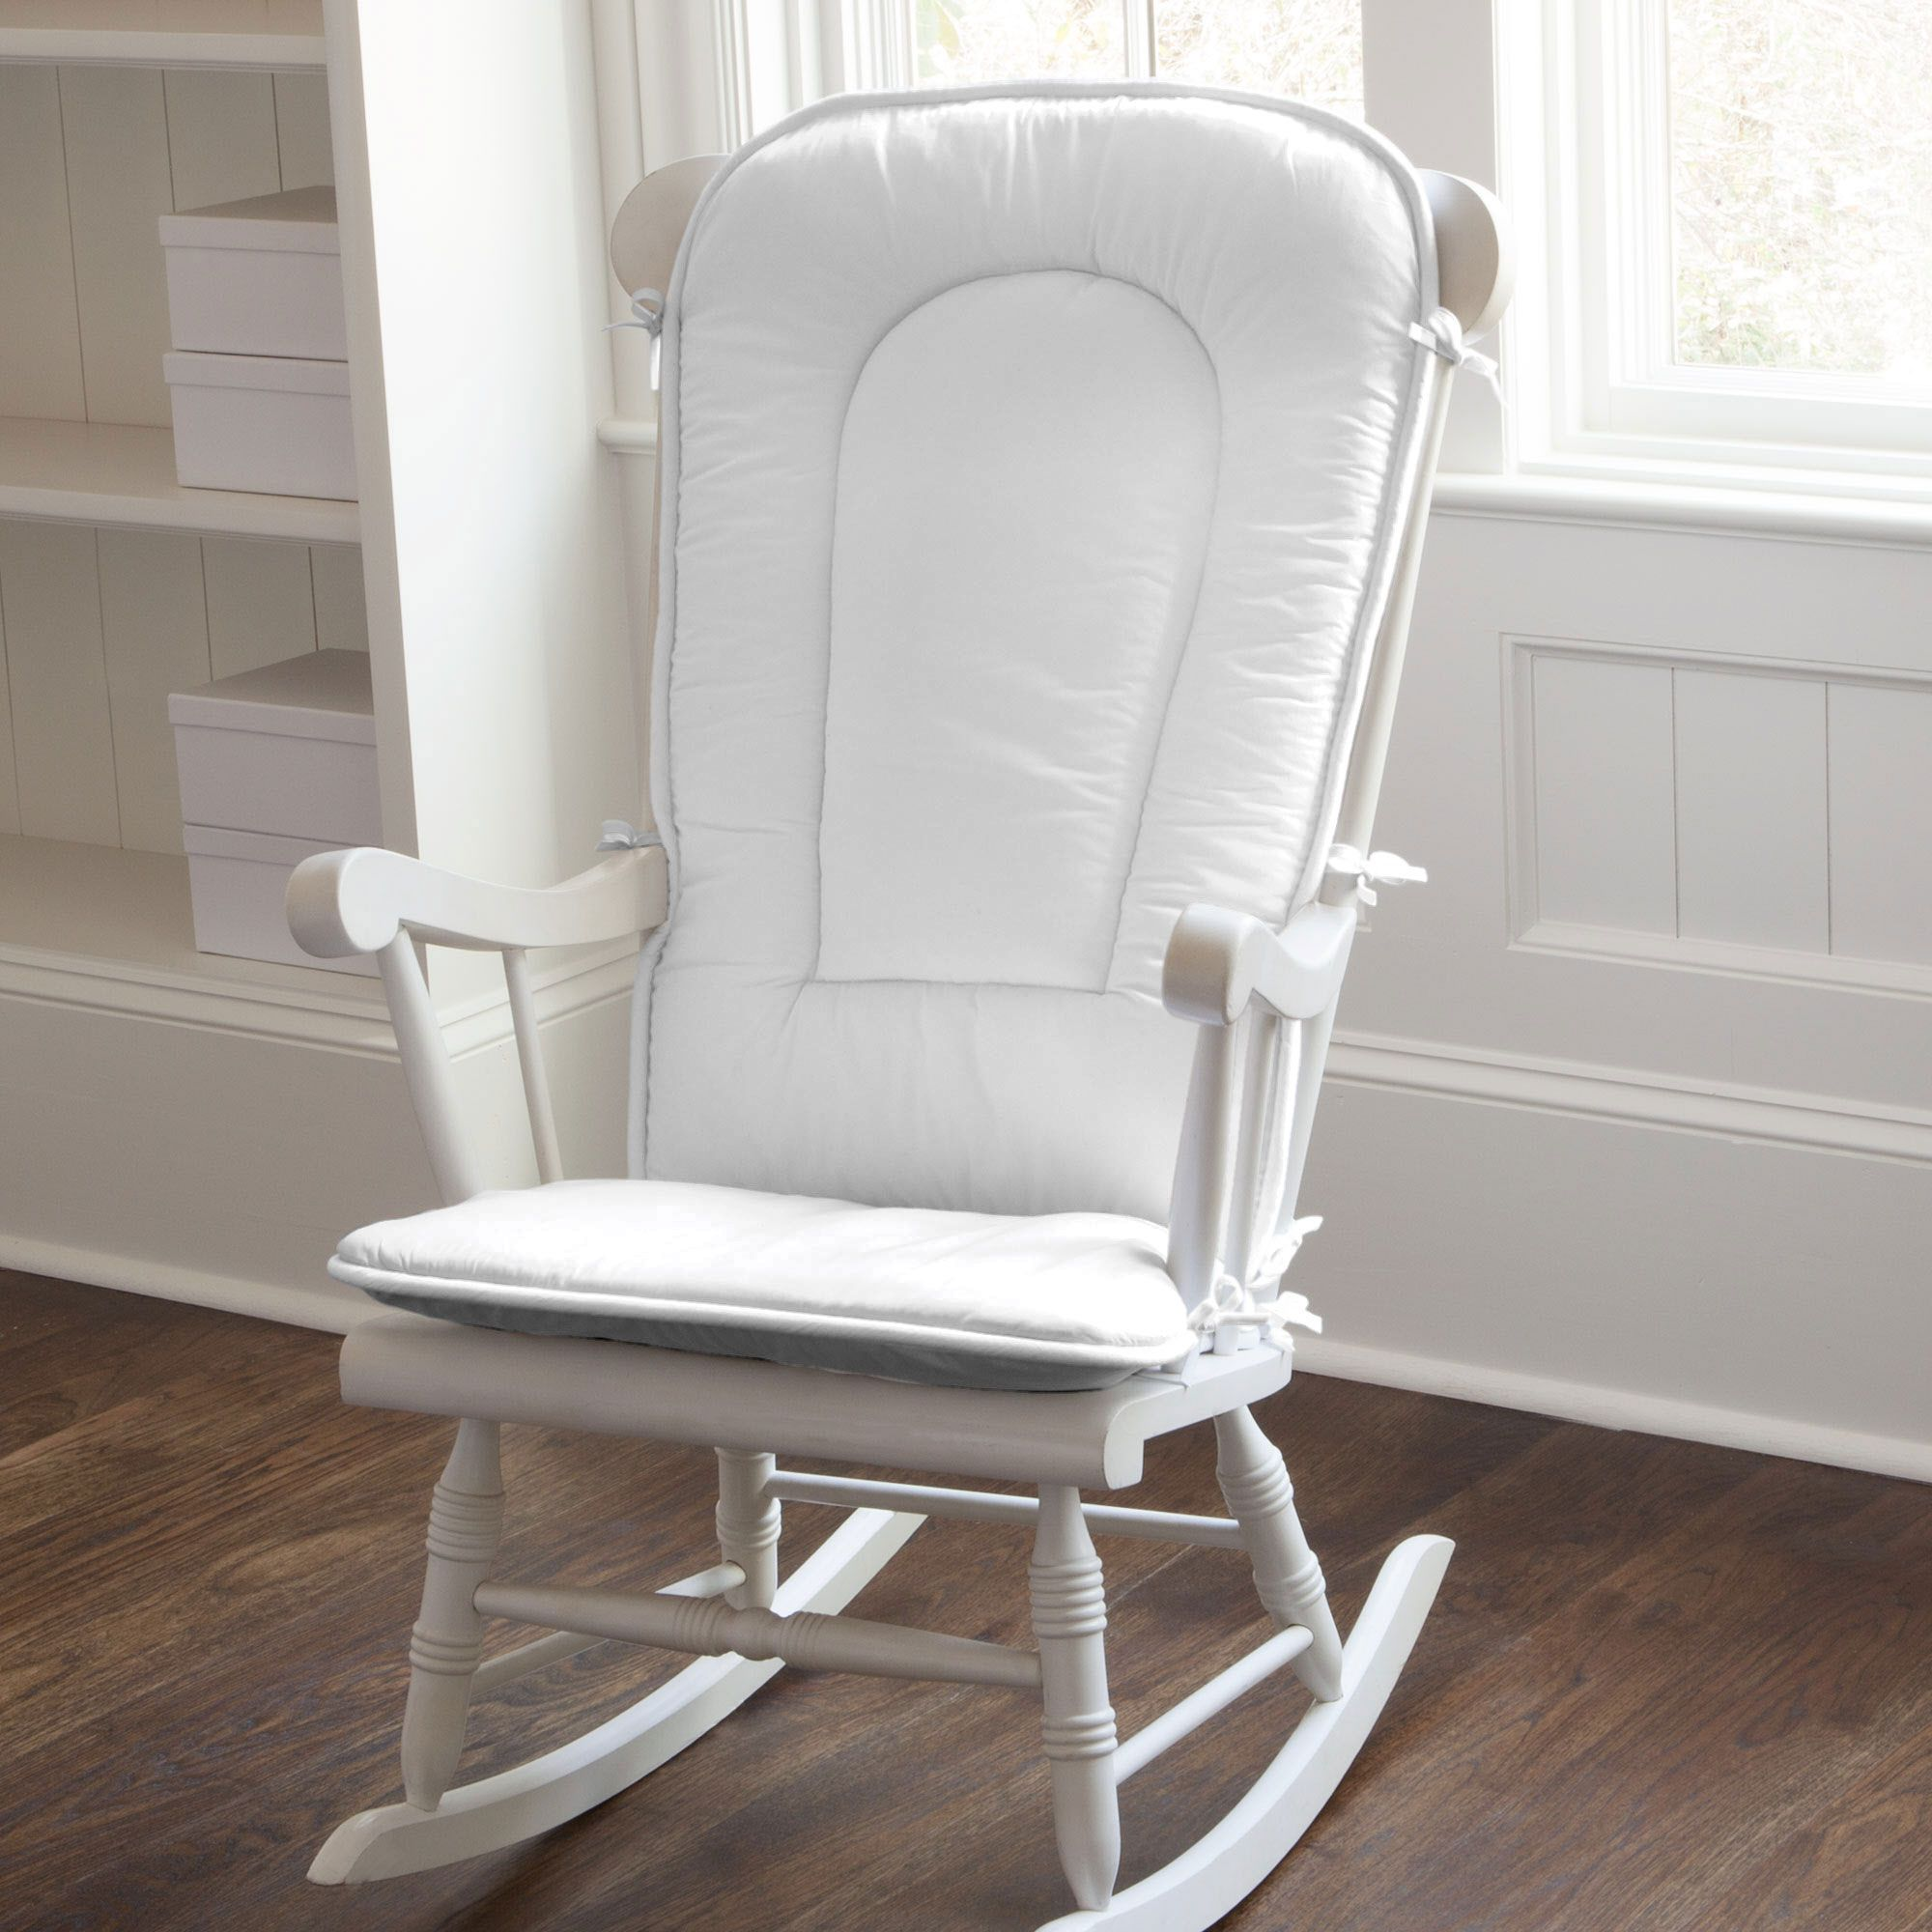 Solid White Rocking Chair Pad Dos